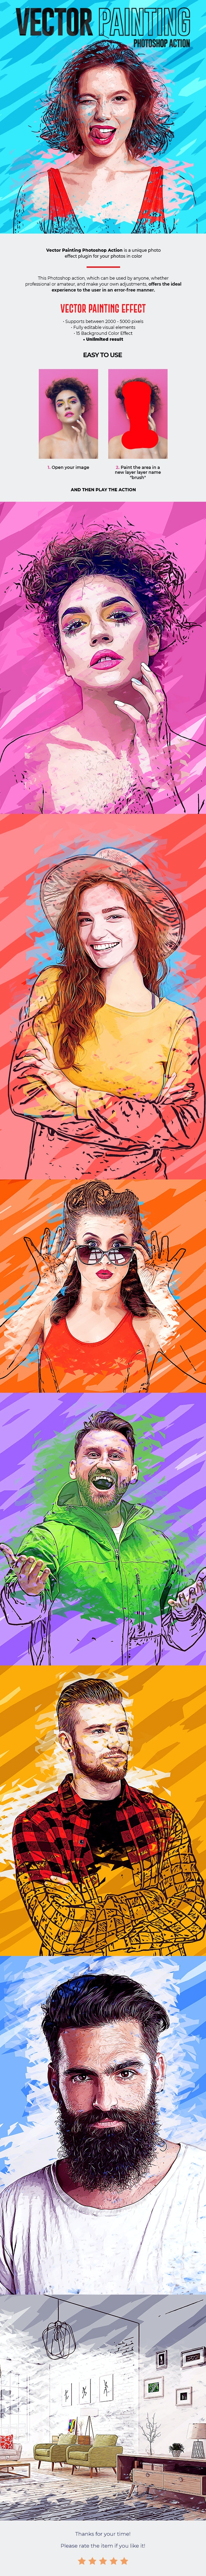 Vector Painting Effect Photoshop Action - Photo Effects Actions